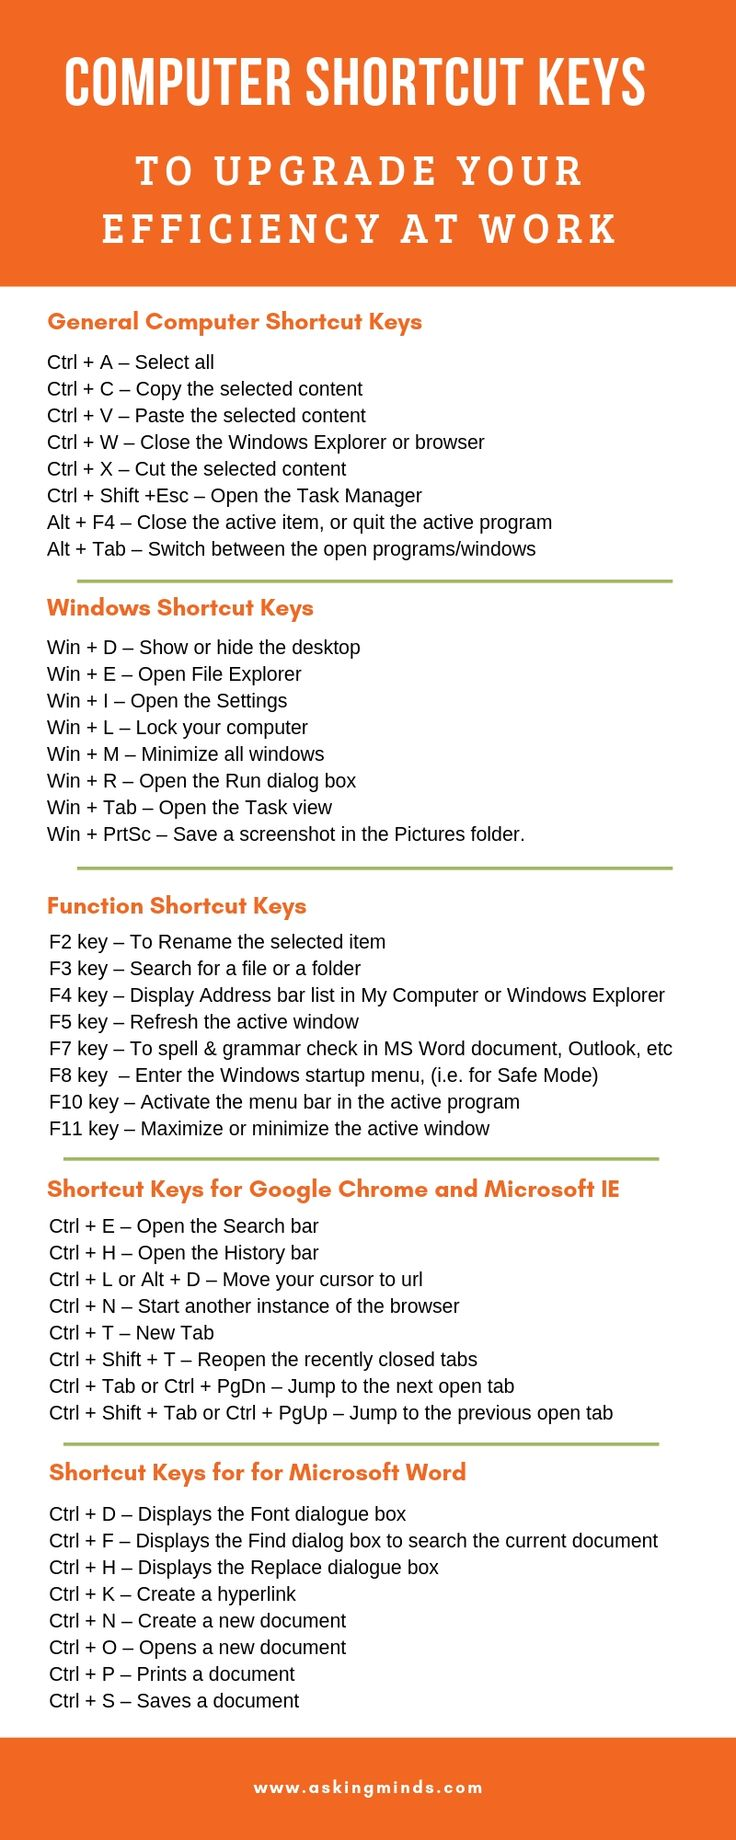 101 Computer Shortcut keys to upgrade your efficiency at work